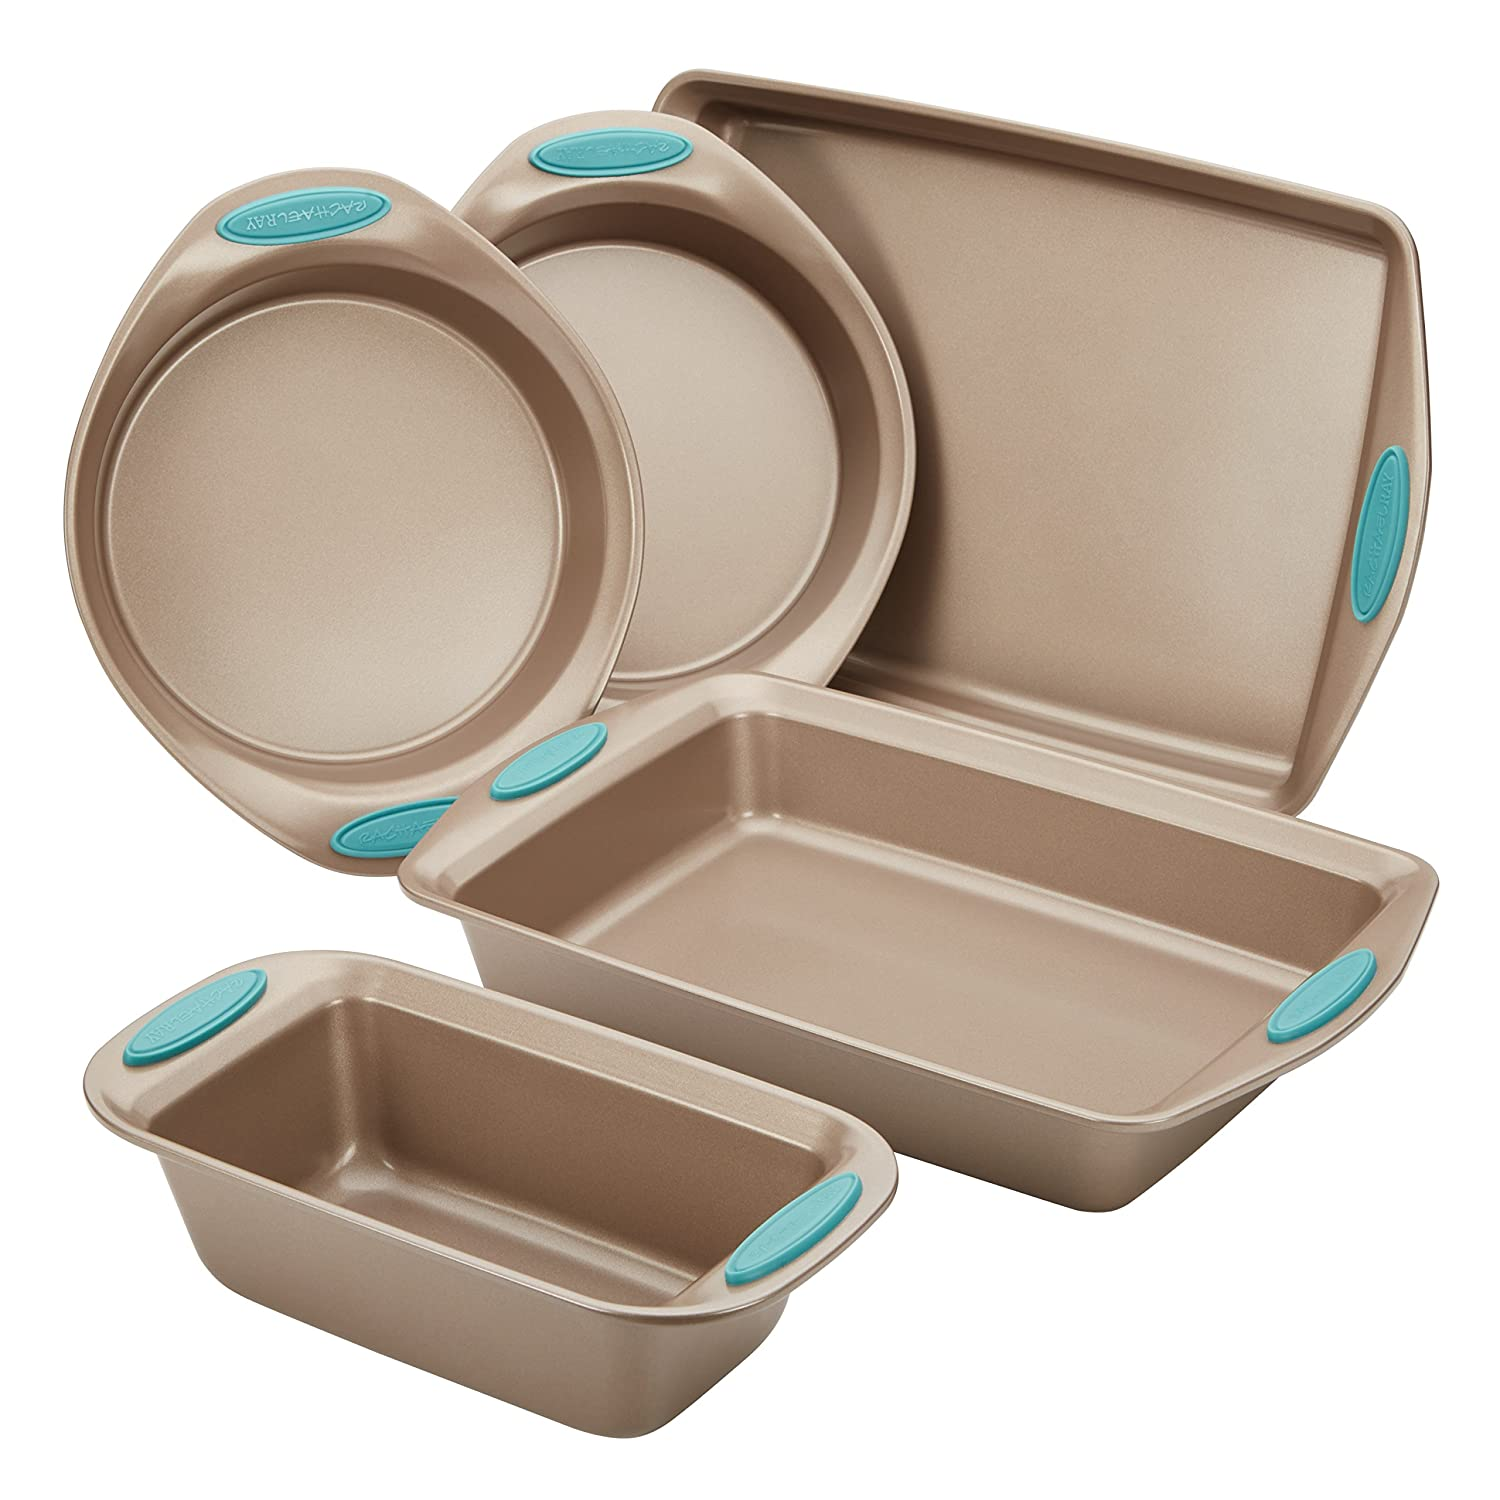 Rachael Ray Nonstick Bakeware 5-Piece Set, Latte Brown with Agave Blue Handle Grips 46179